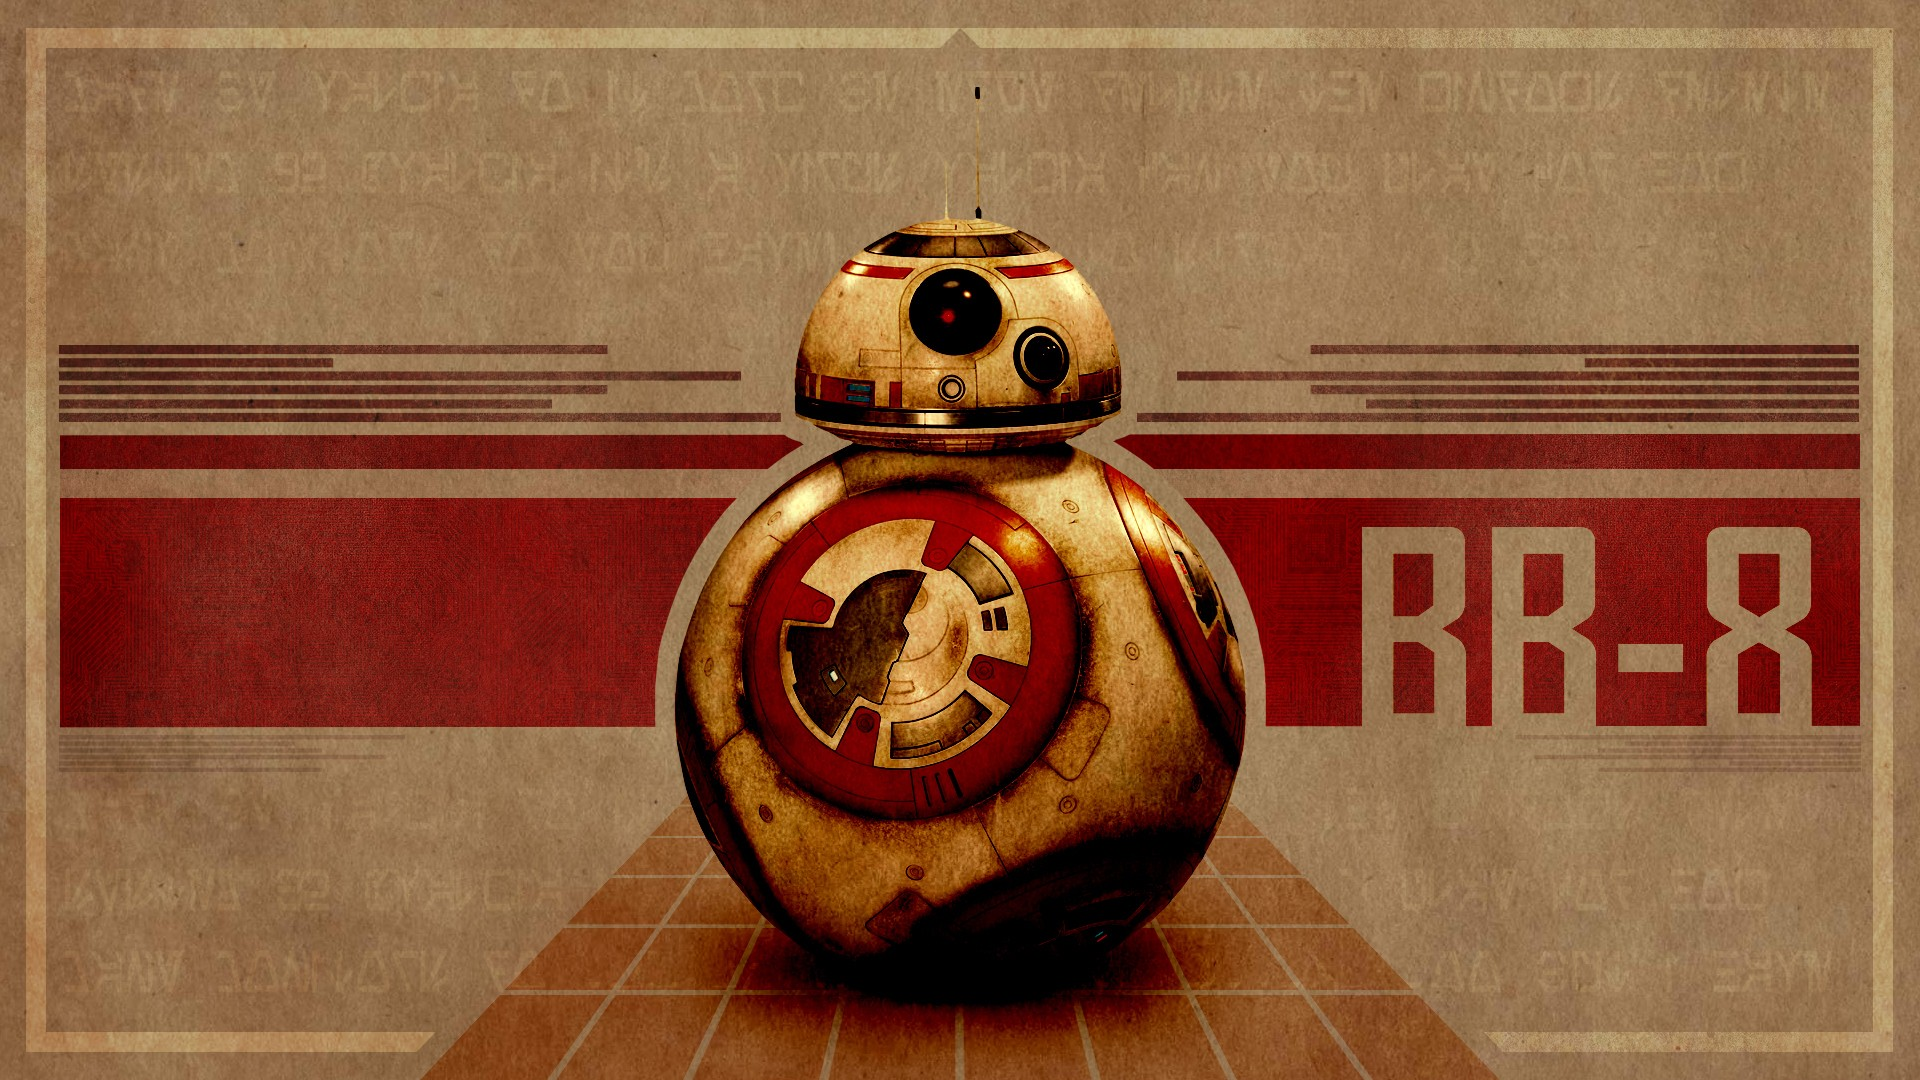 Bb 8 Wallpaper By Valkia Src Bb 8 Wallpaper For Andro Star Wars Bb8 Wallpaper Hd 1920x1080 Download Hd Wallpaper Wallpapertip